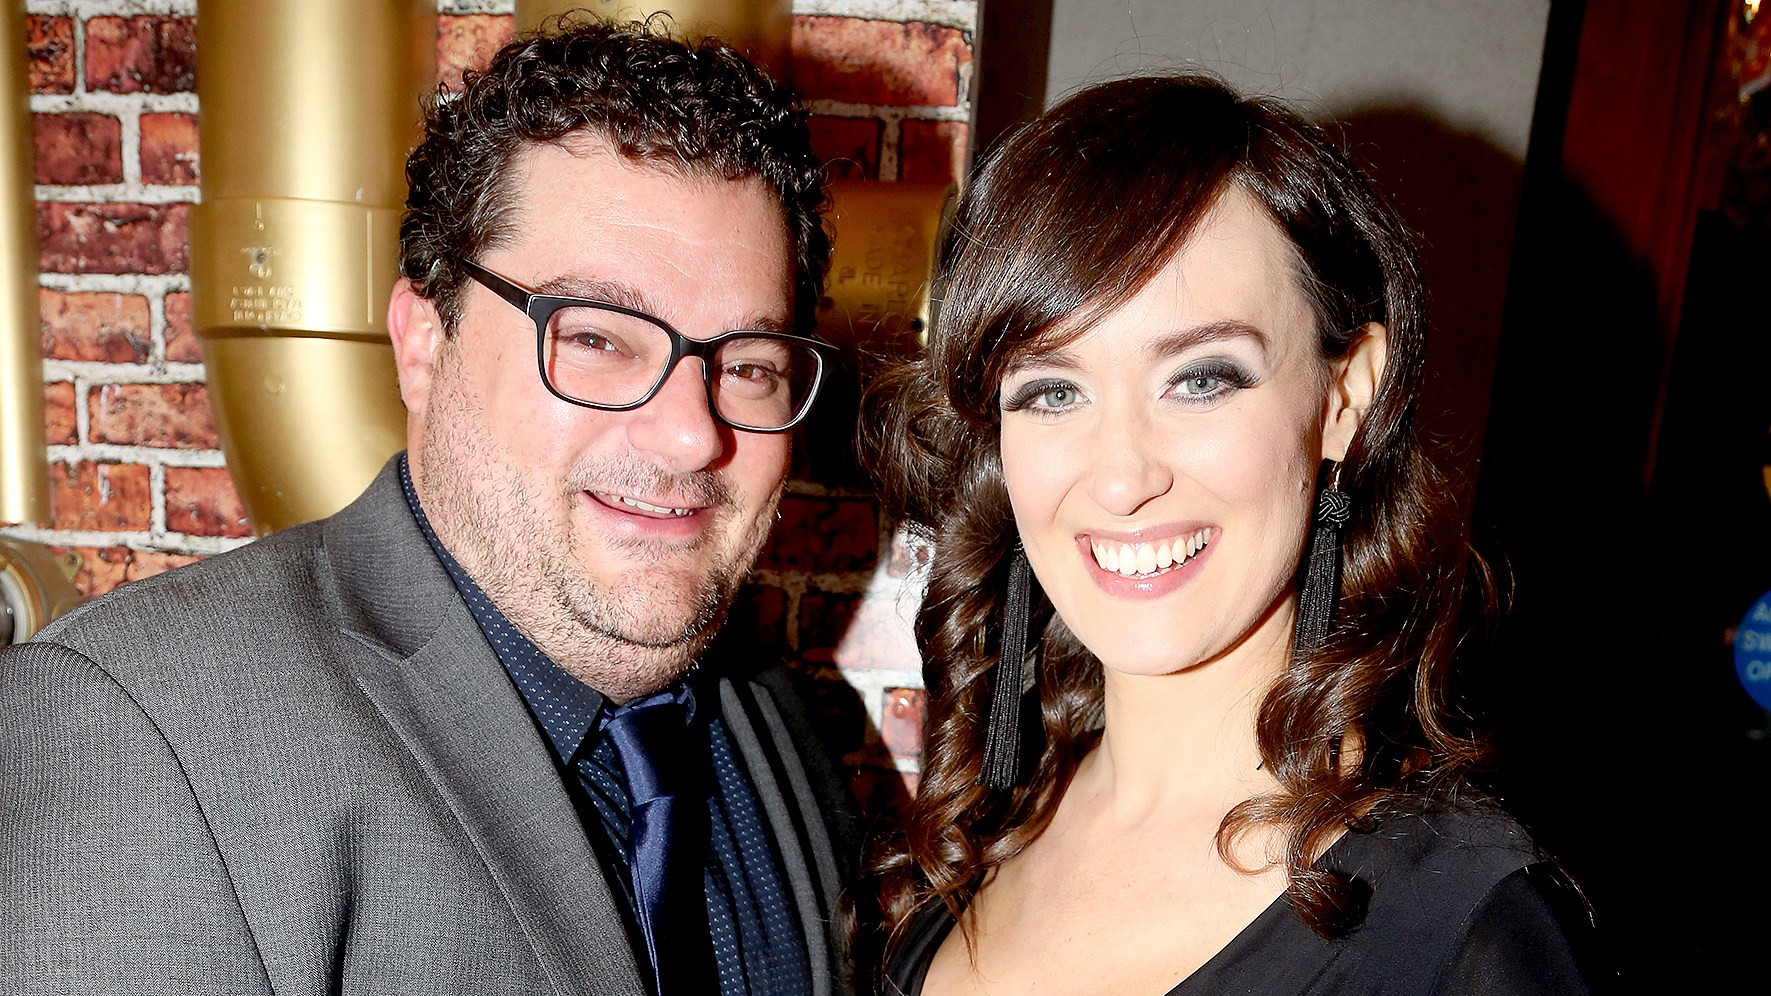 """Bobby Moynihan and Brynn O'Malley pose at the opening night of the new musical """"Charlie and The Chocolate Factory"""" on Broadway at The Lunt-Fontanne Theatre on April 23, 2017 in New York City."""